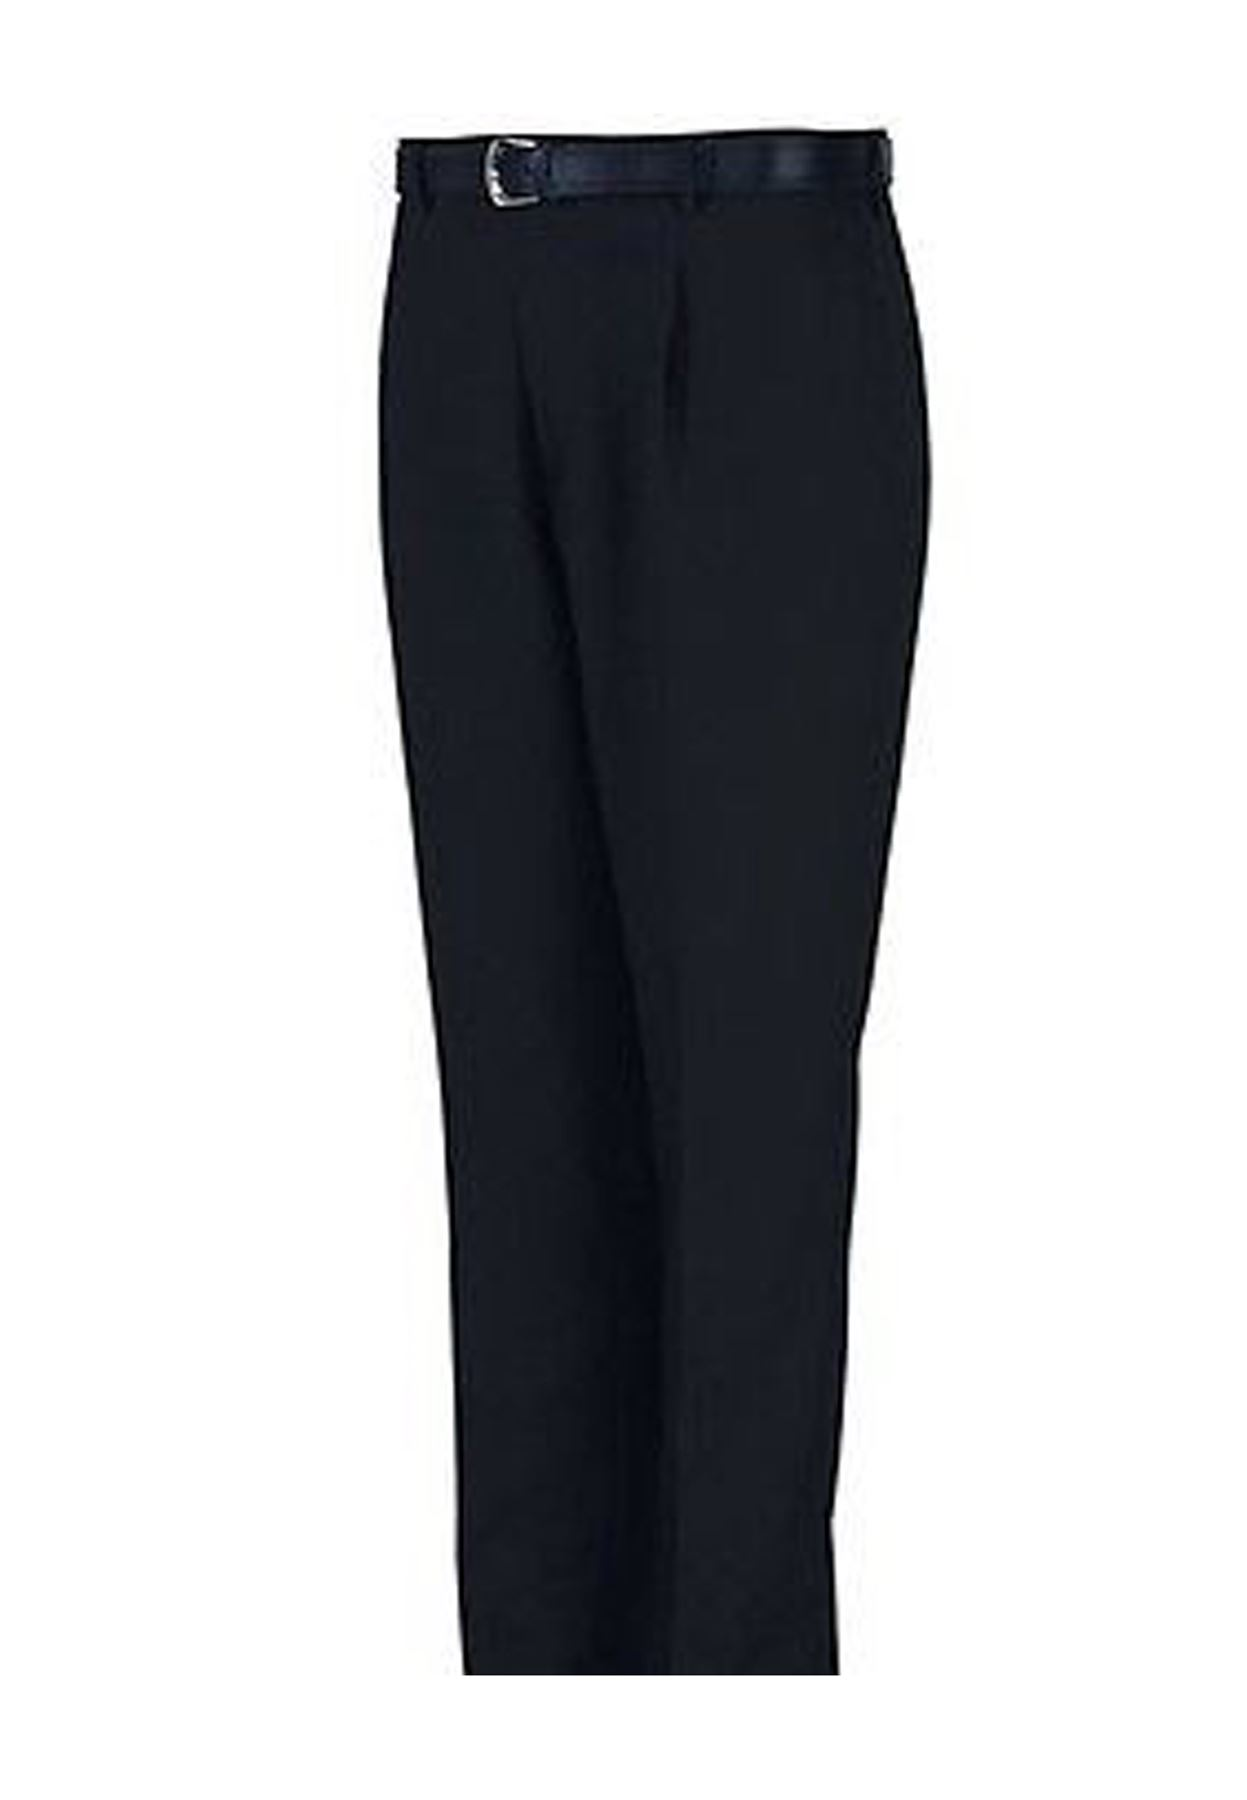 "NEW MENS BOYS WAIST SIZE BACK TO SCHOOL BLACK TROUSERS SIZE 30"" TO 40"" WAIST"